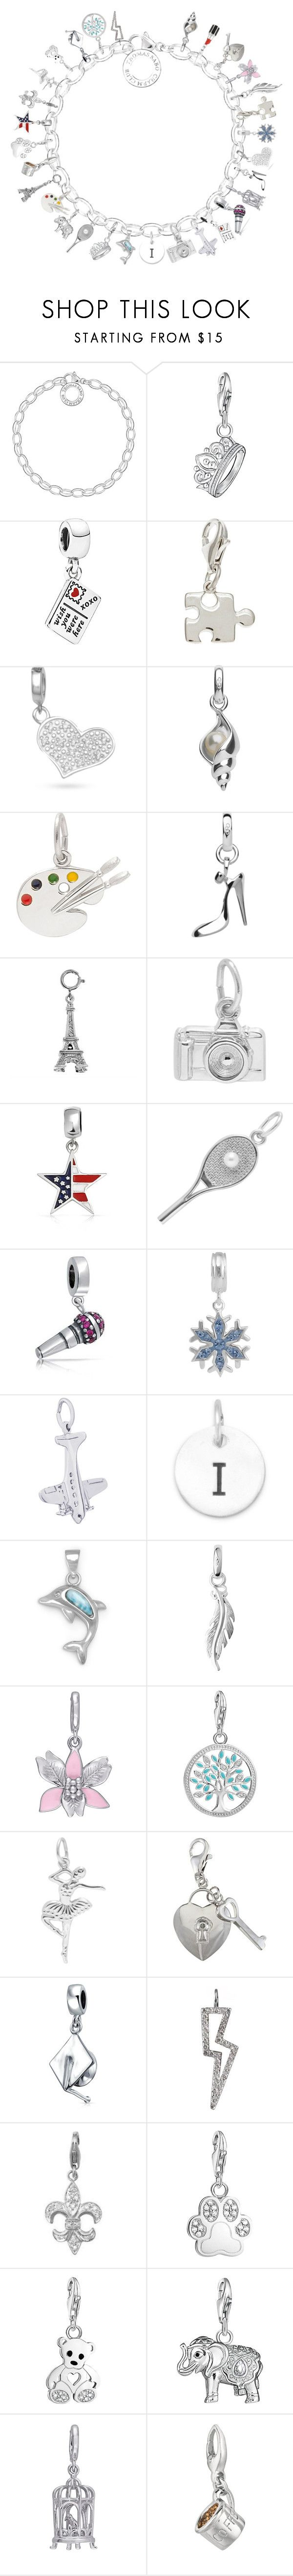 """""""My Charm Bracelet"""" by hellobonjour2018 ❤ liked on Polyvore featuring Thomas Sabo, Pandora, La Preciosa, Belk Silverworks, Links of London, Bling Jewelry, Disney, Rembrandt Charms, Laura Ashley and Tessa Packard"""